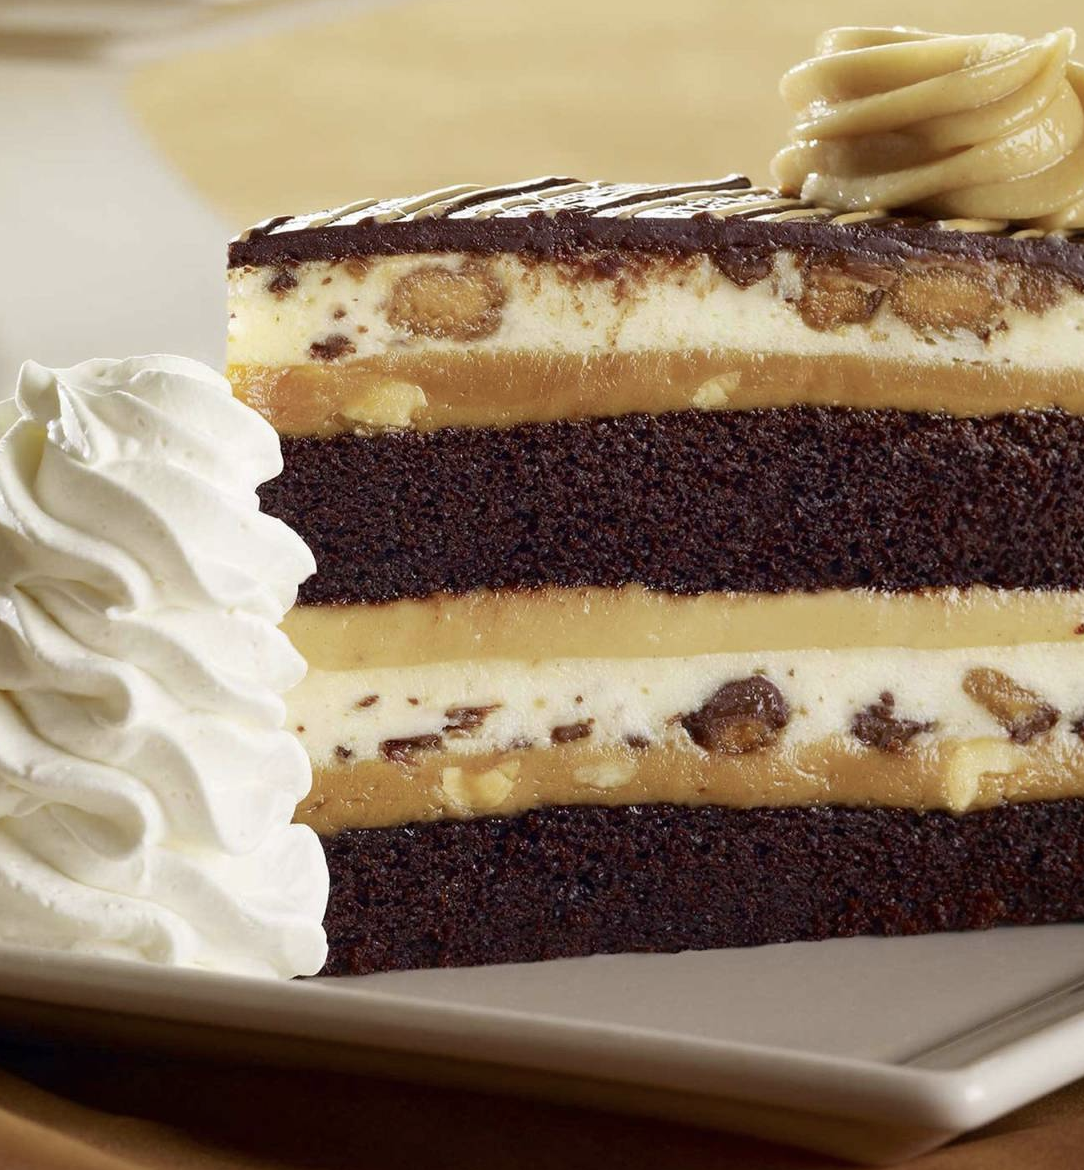 Free Slices at the Cheesecake Factory Leads to Chaos; One Person Arrested